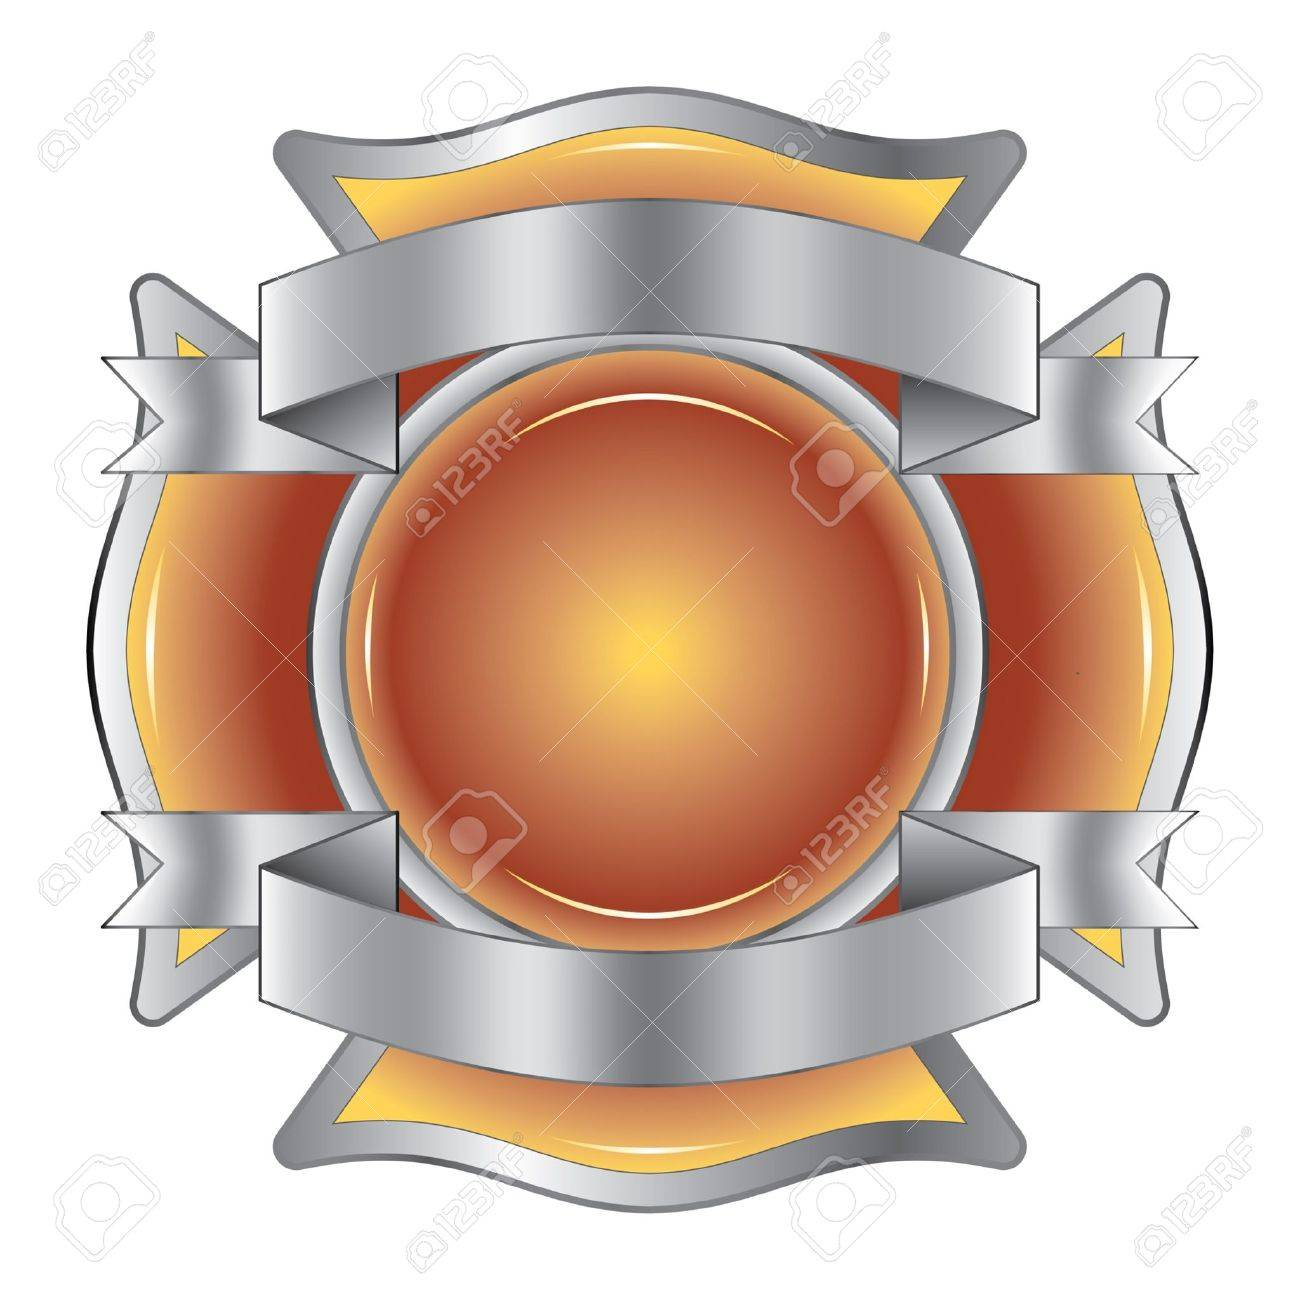 Firefighter Cross with Ribbons is an illustration of a firefighter Maltese cross made of gemstone with silver ribbons at the top and bottom. Stock Vector - 11986183